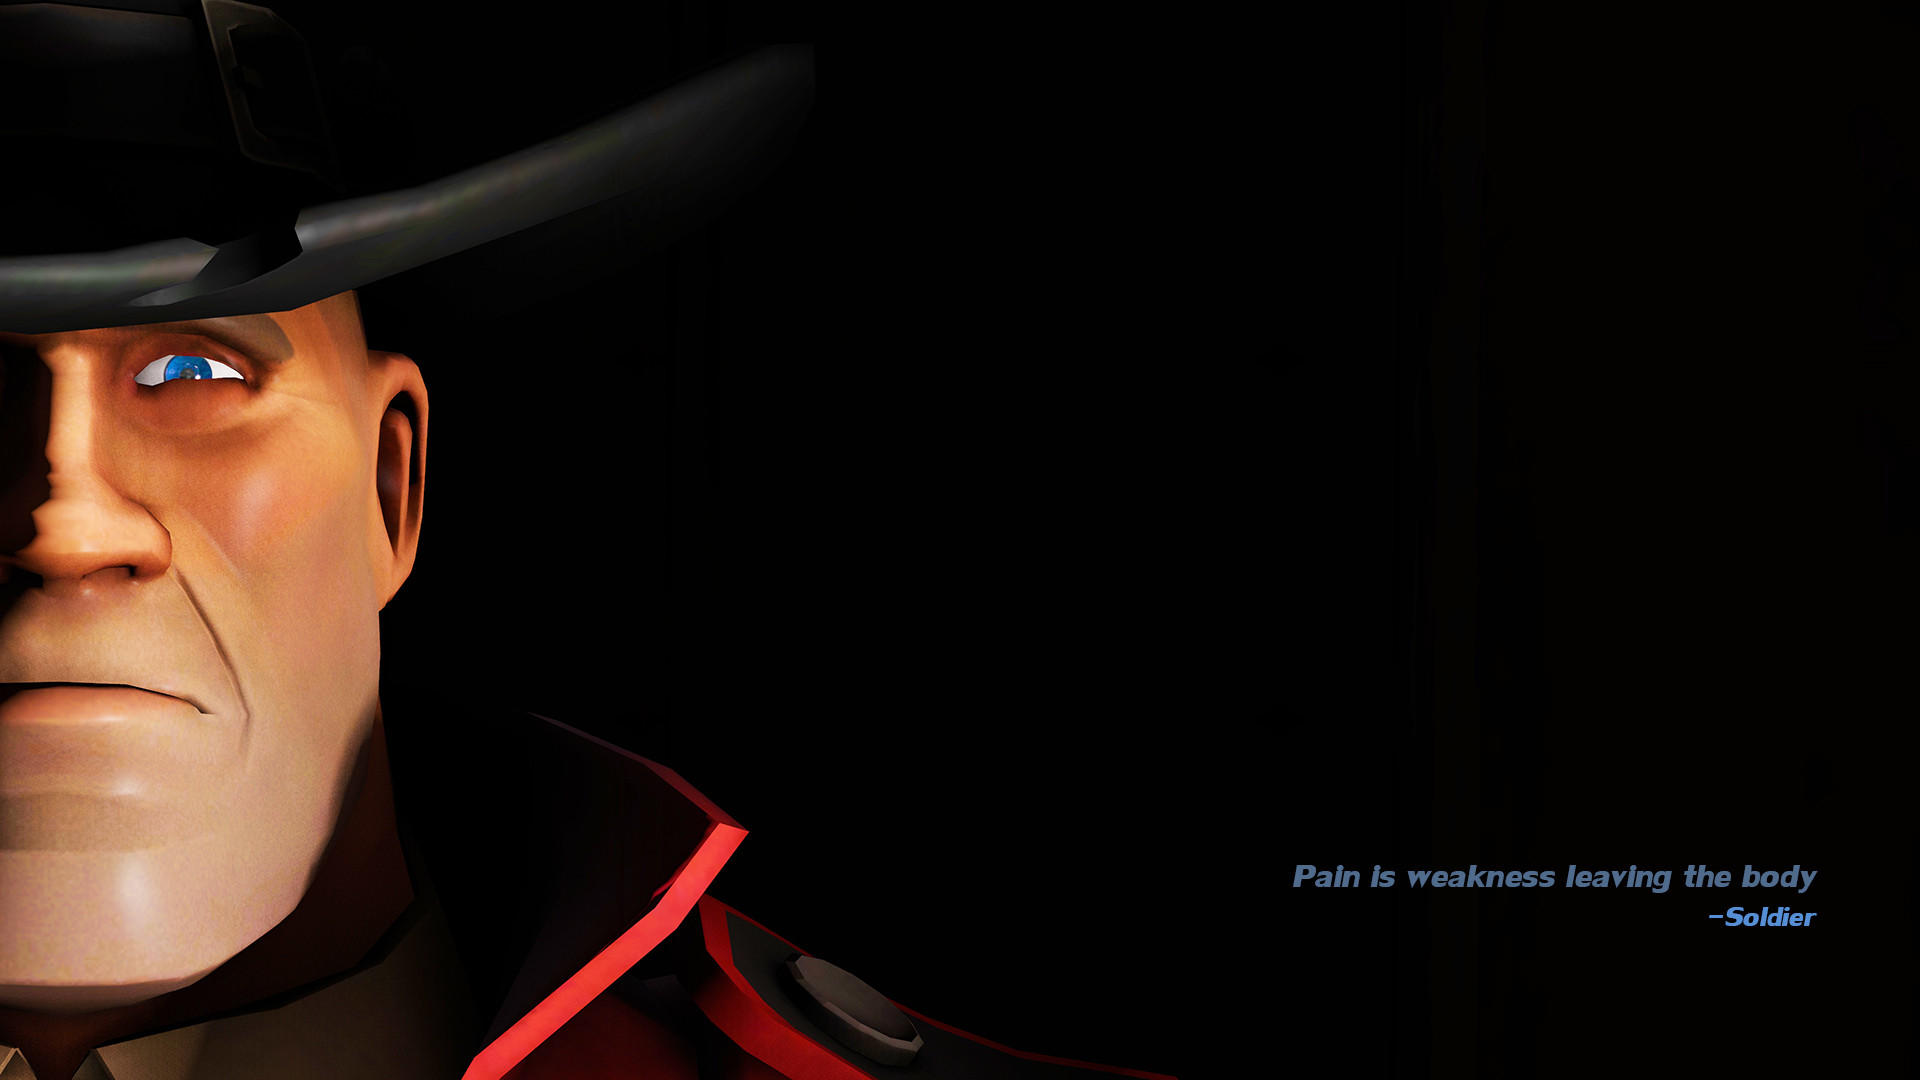 1920x1080 Video Game - Team Fortress 2 Soldier (Team Fortress) Dark Wallpaper